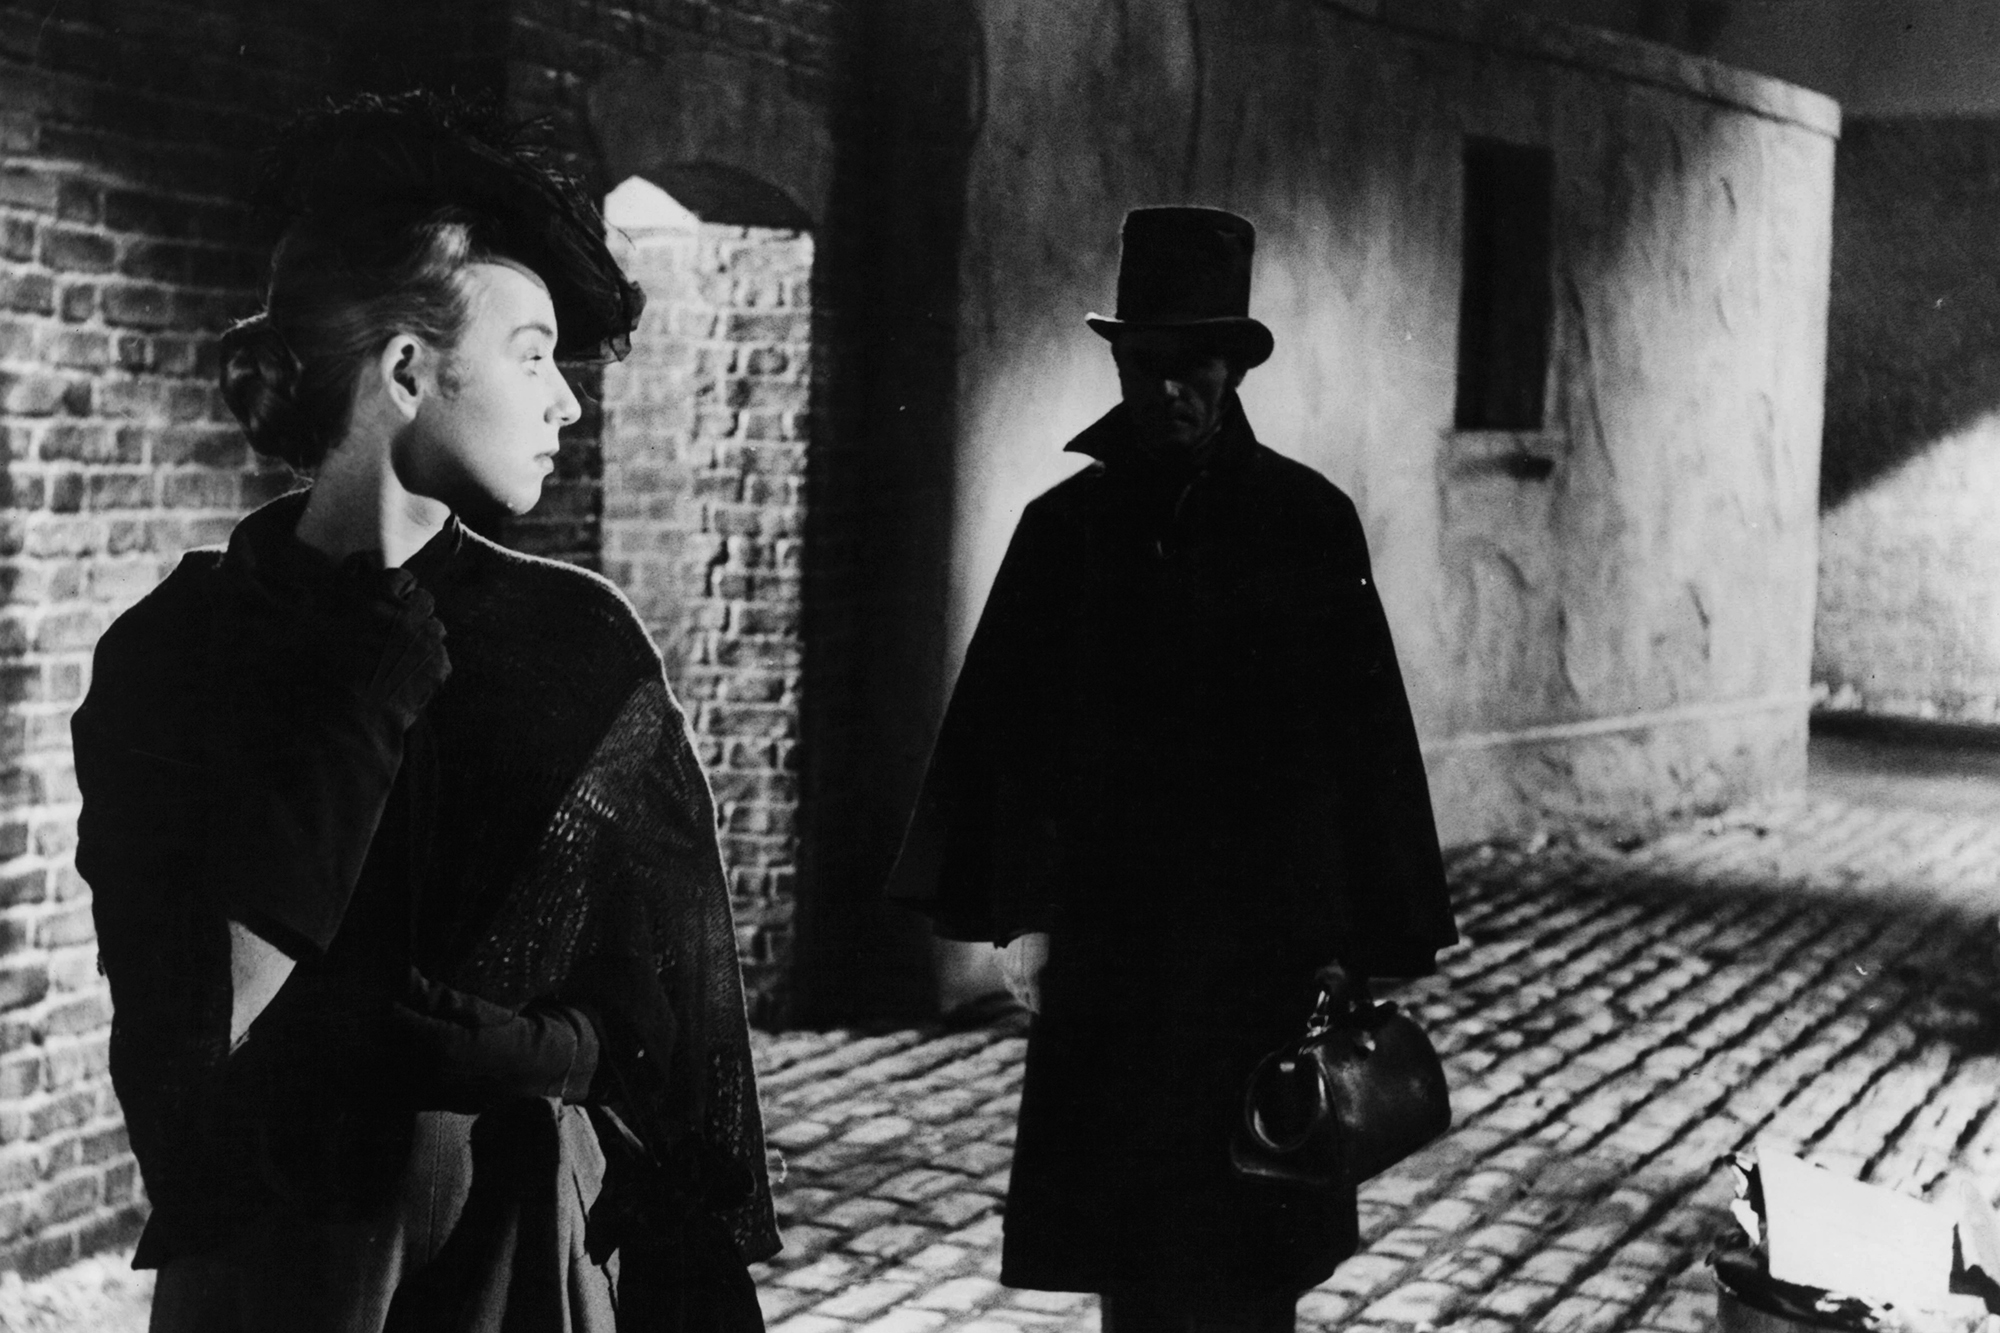 A scene from Jack The Ripper, 1959.